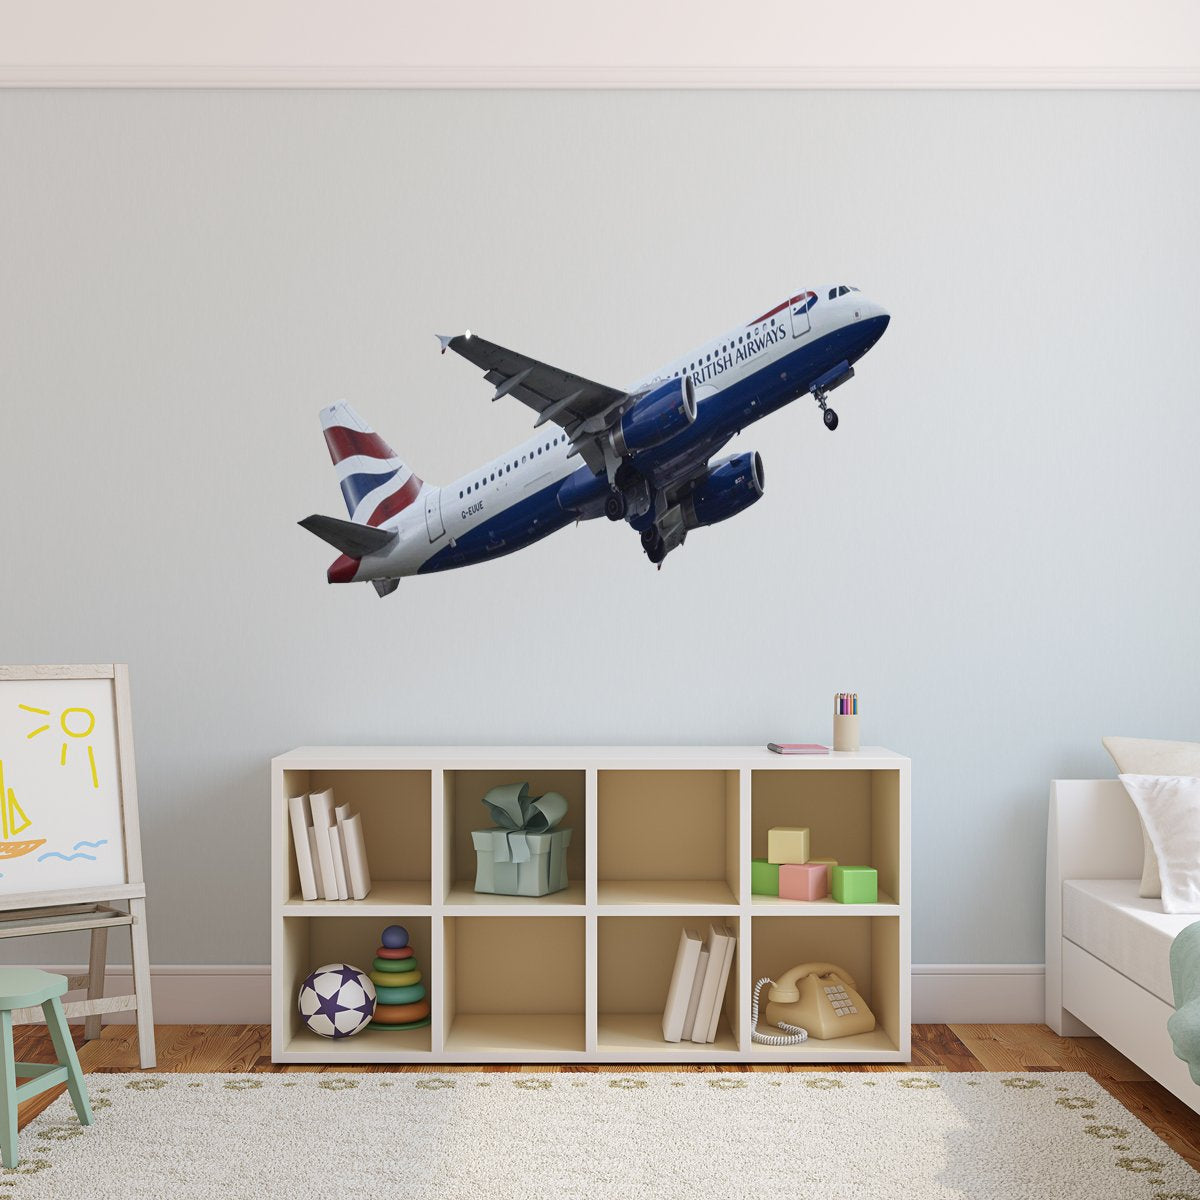 VWAQ Peel and Stick Airplane Vinyl Wall Decal - PAS4 - VWAQ Vinyl Wall Art Quotes and Prints